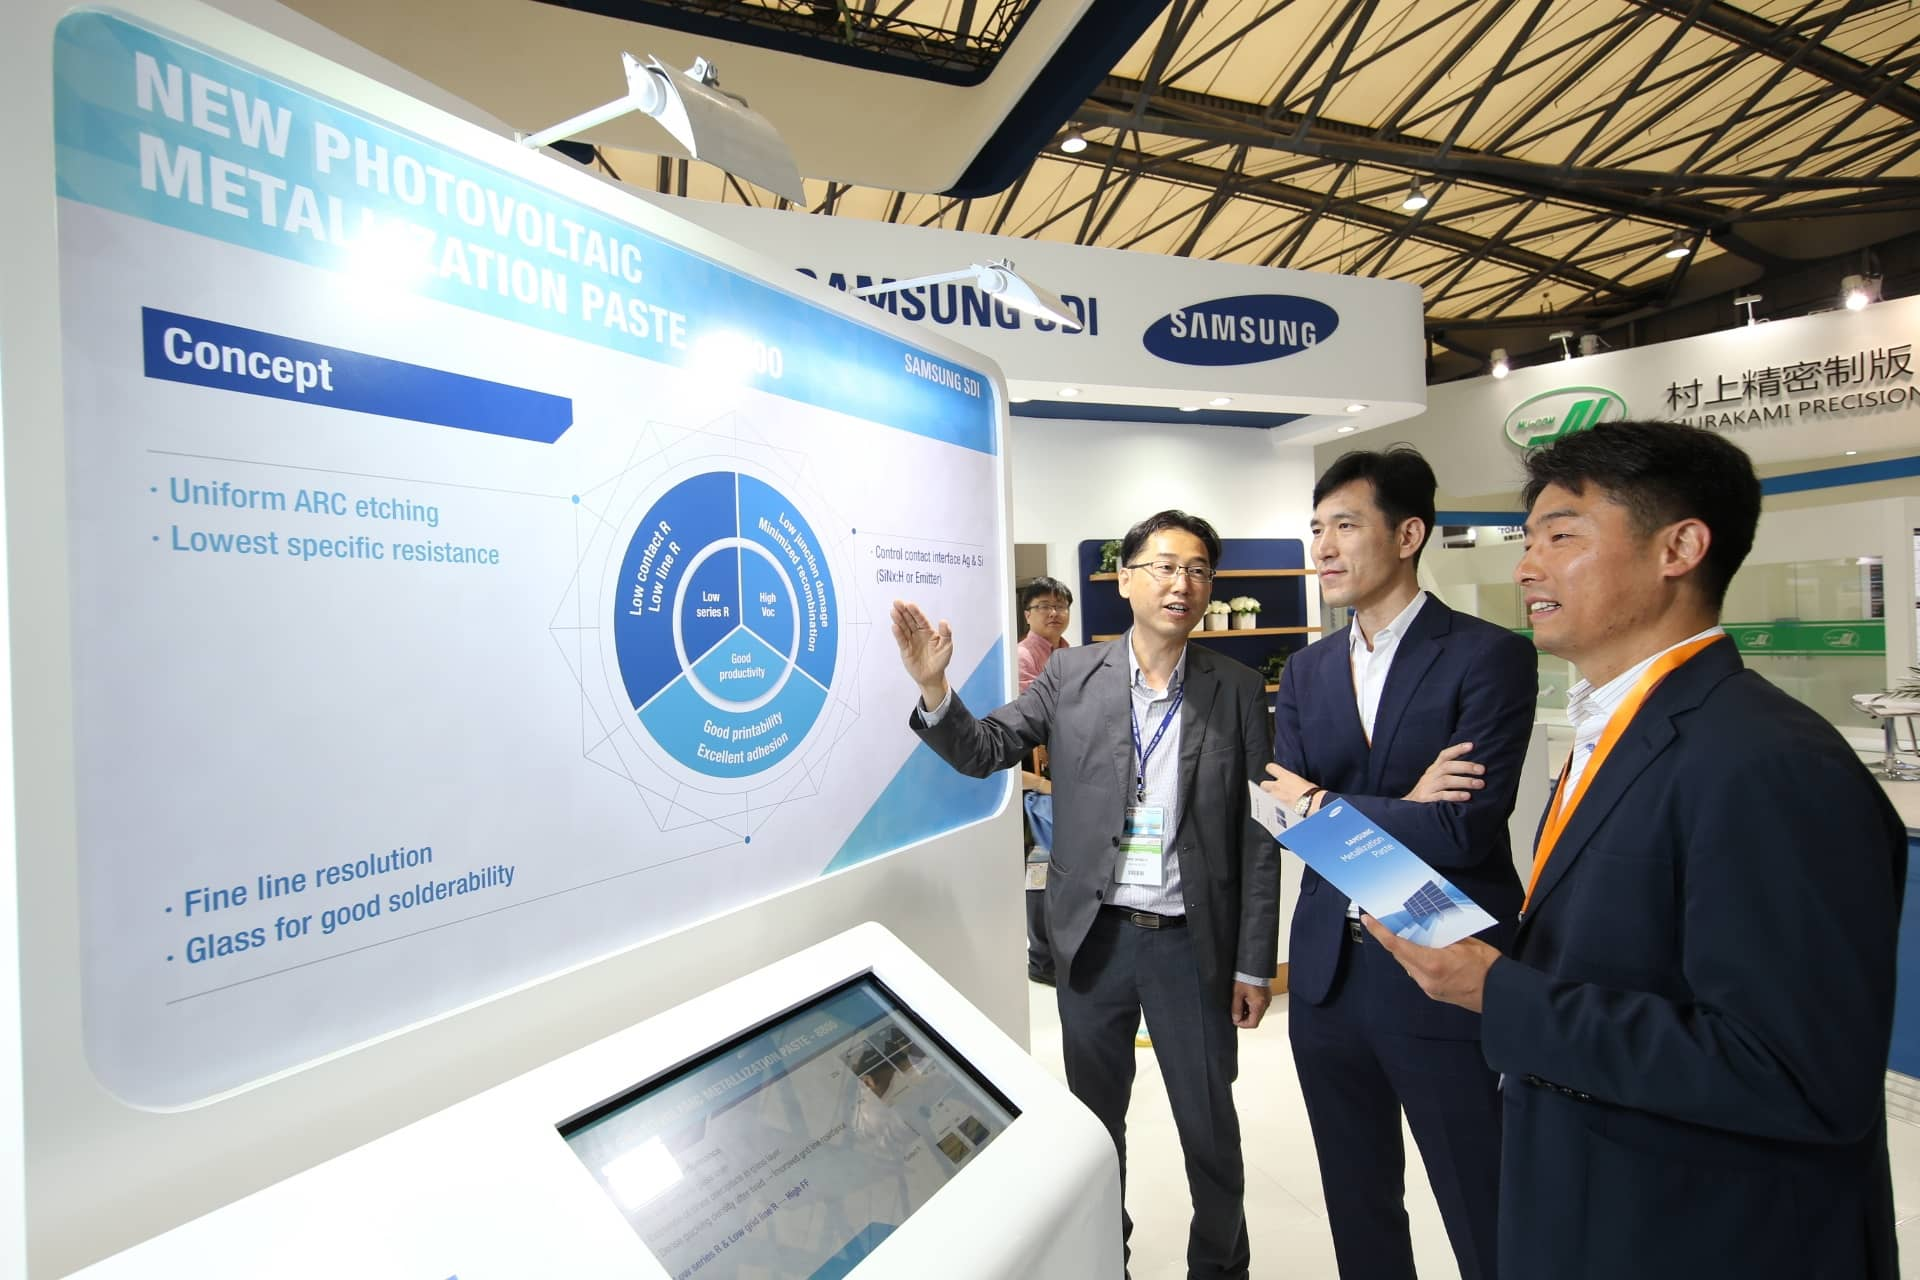 Samsung Samsung SDI Focuses On Chinese Market With New Production Line, PV Paste